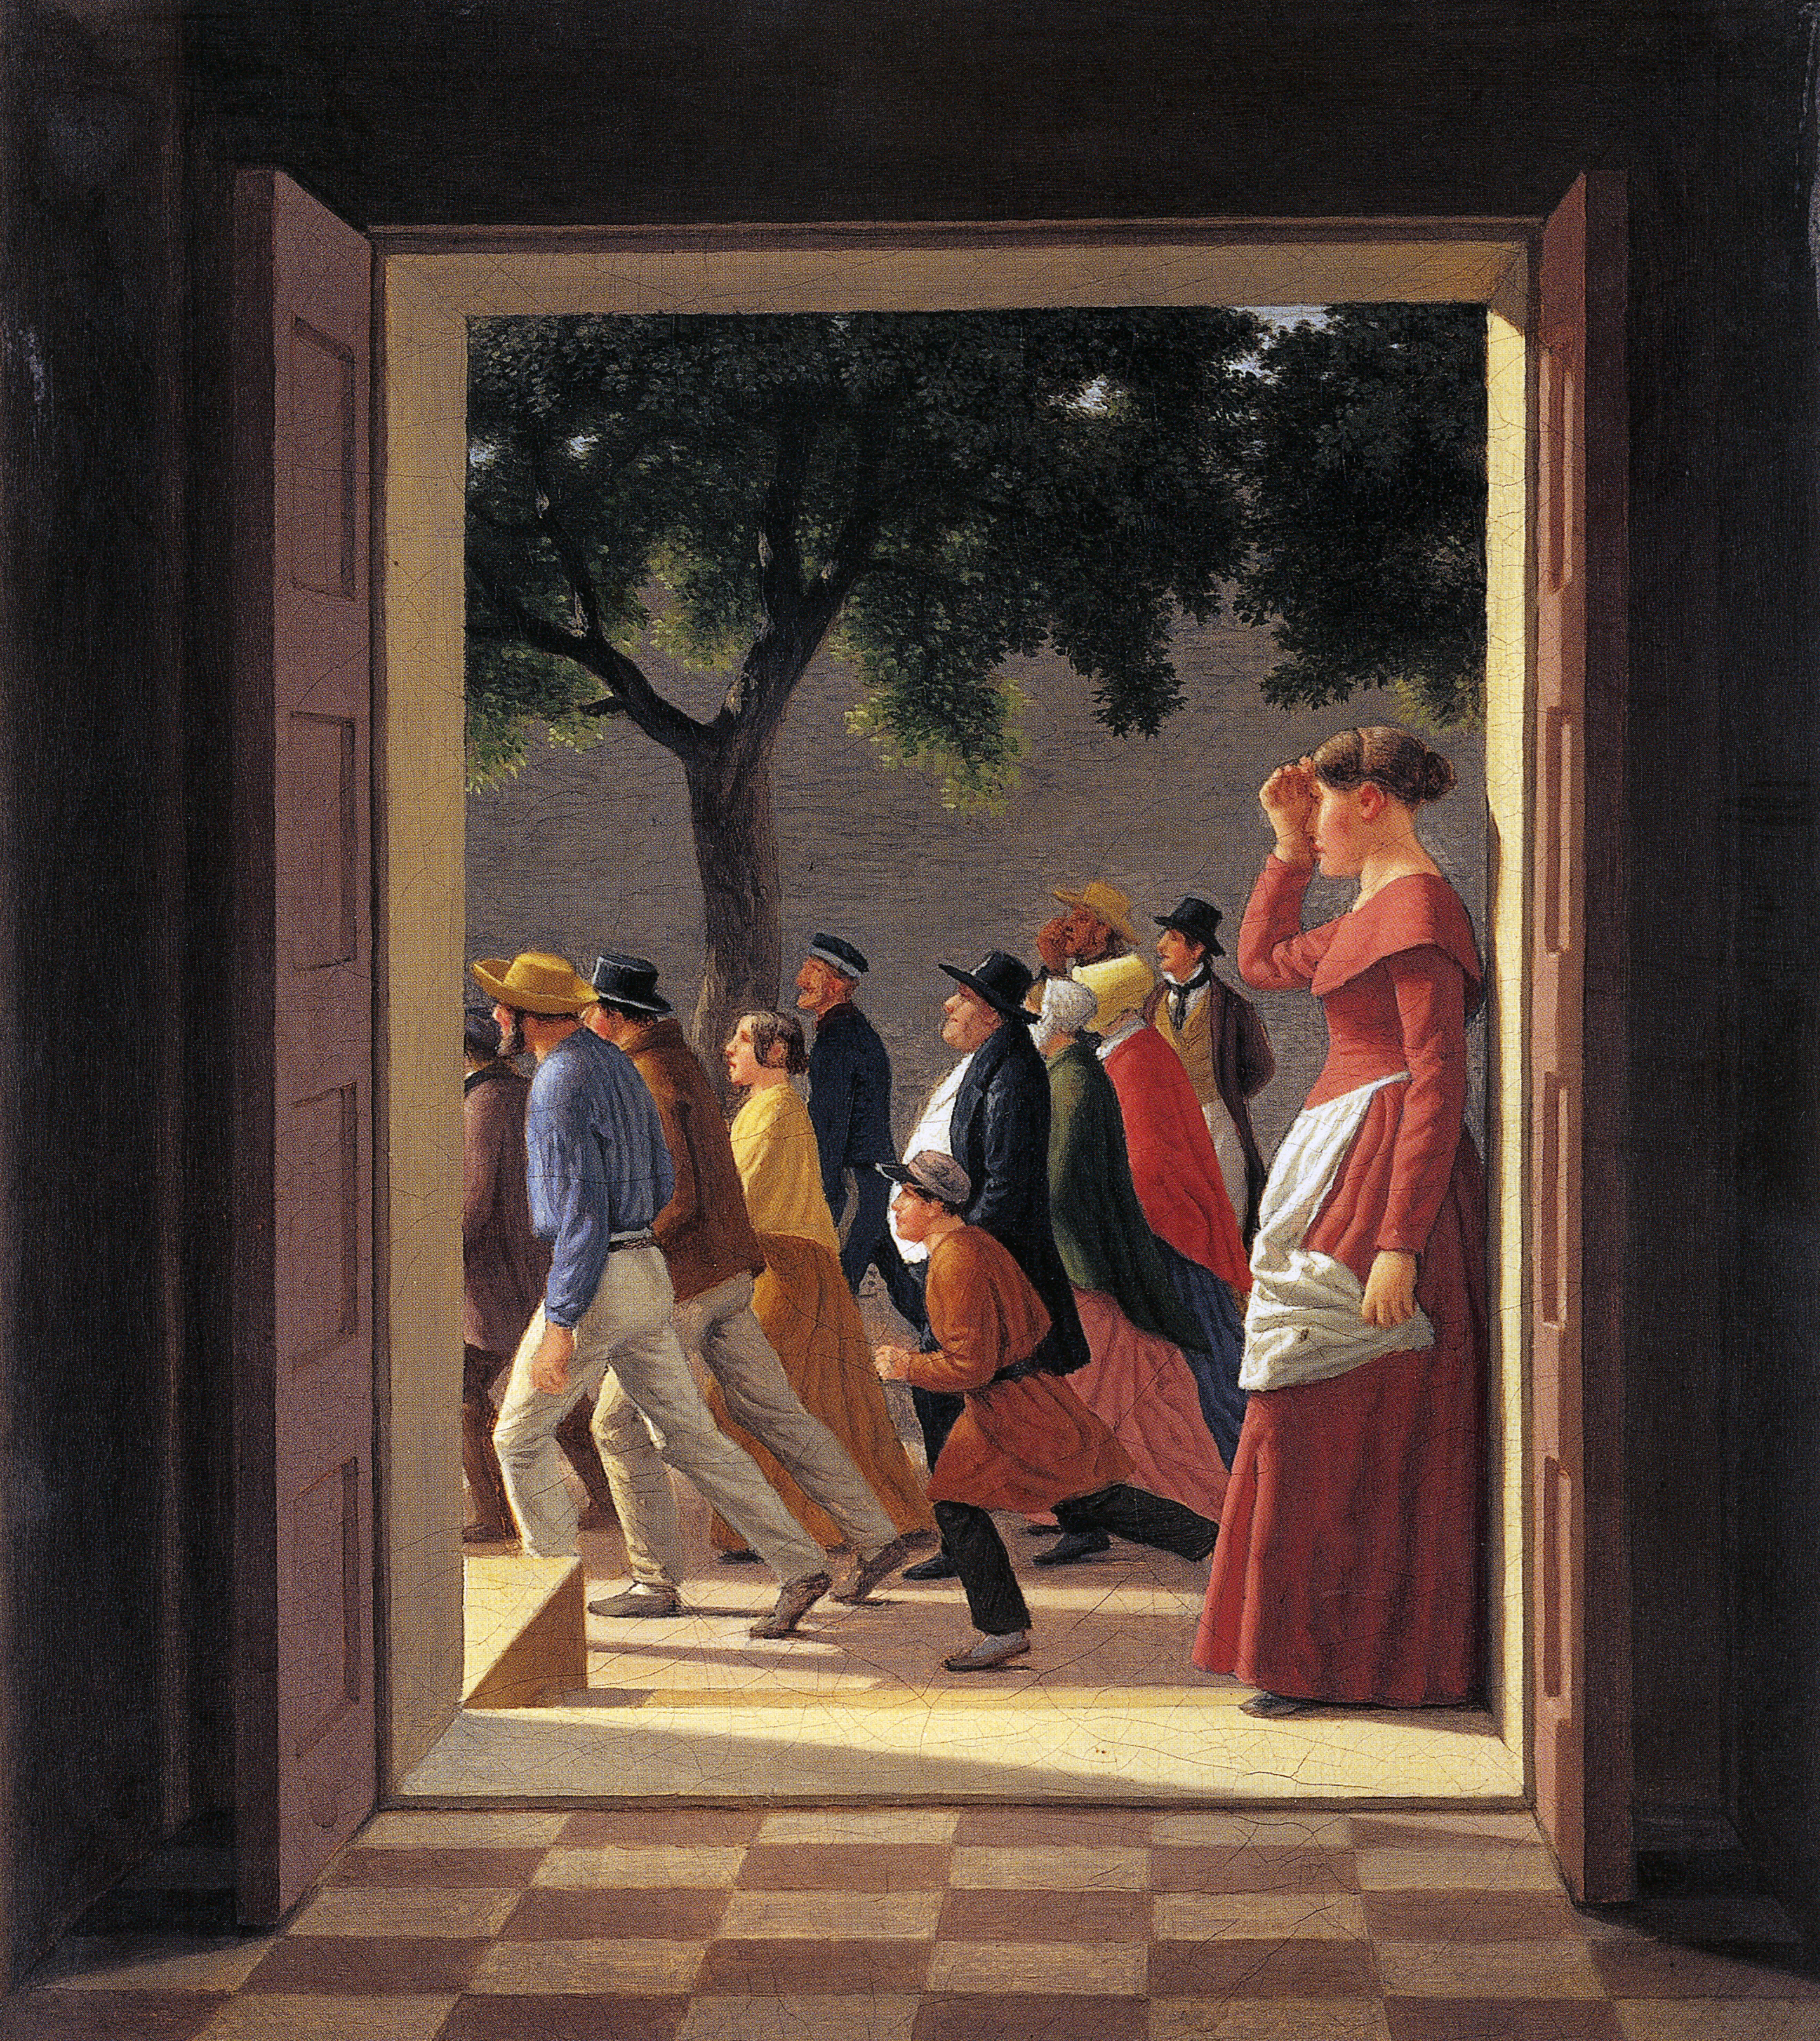 Eckersberg_View through a Doorway of Running Figures, 1845_p185